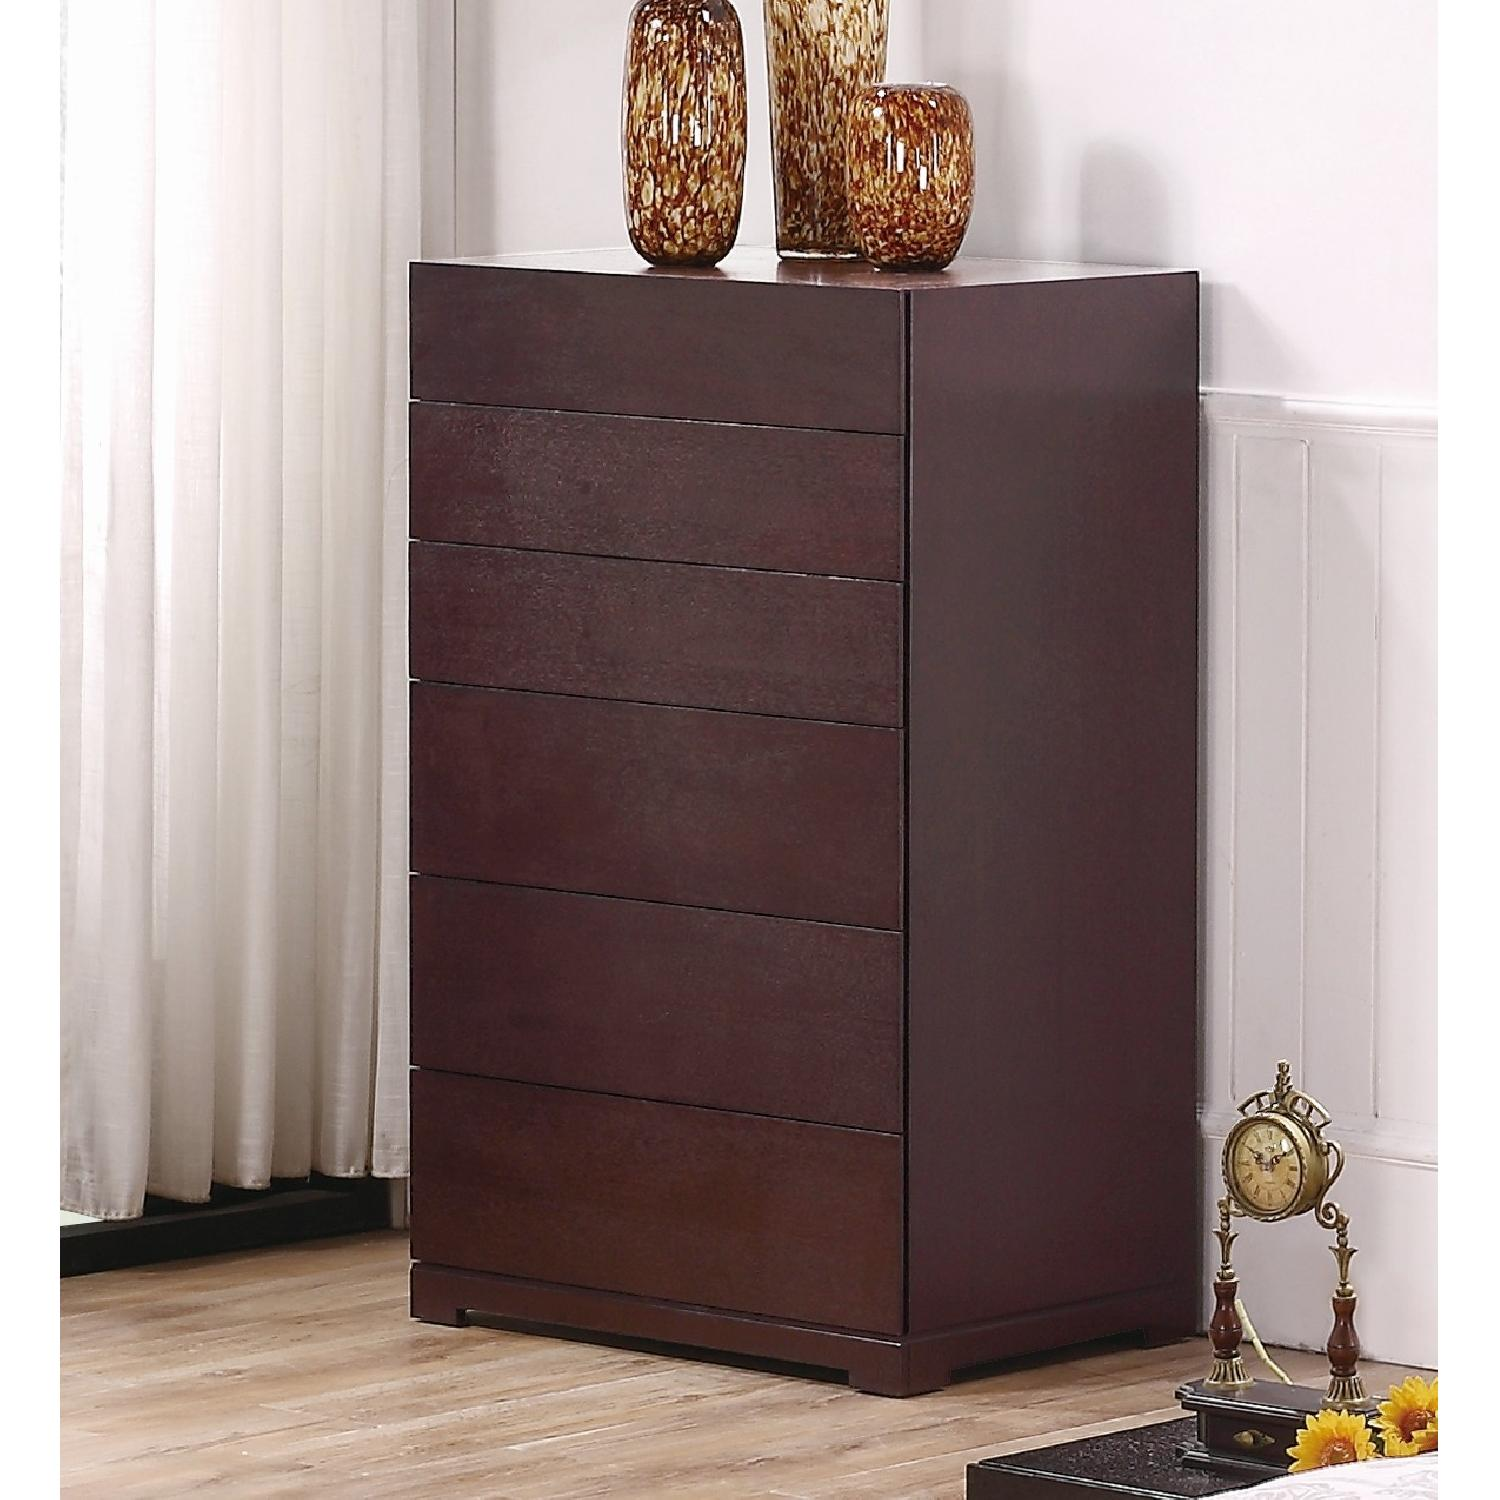 6-Drawer Chest in Espresso Finish w/ Premium Full Extension Tracks - image-1